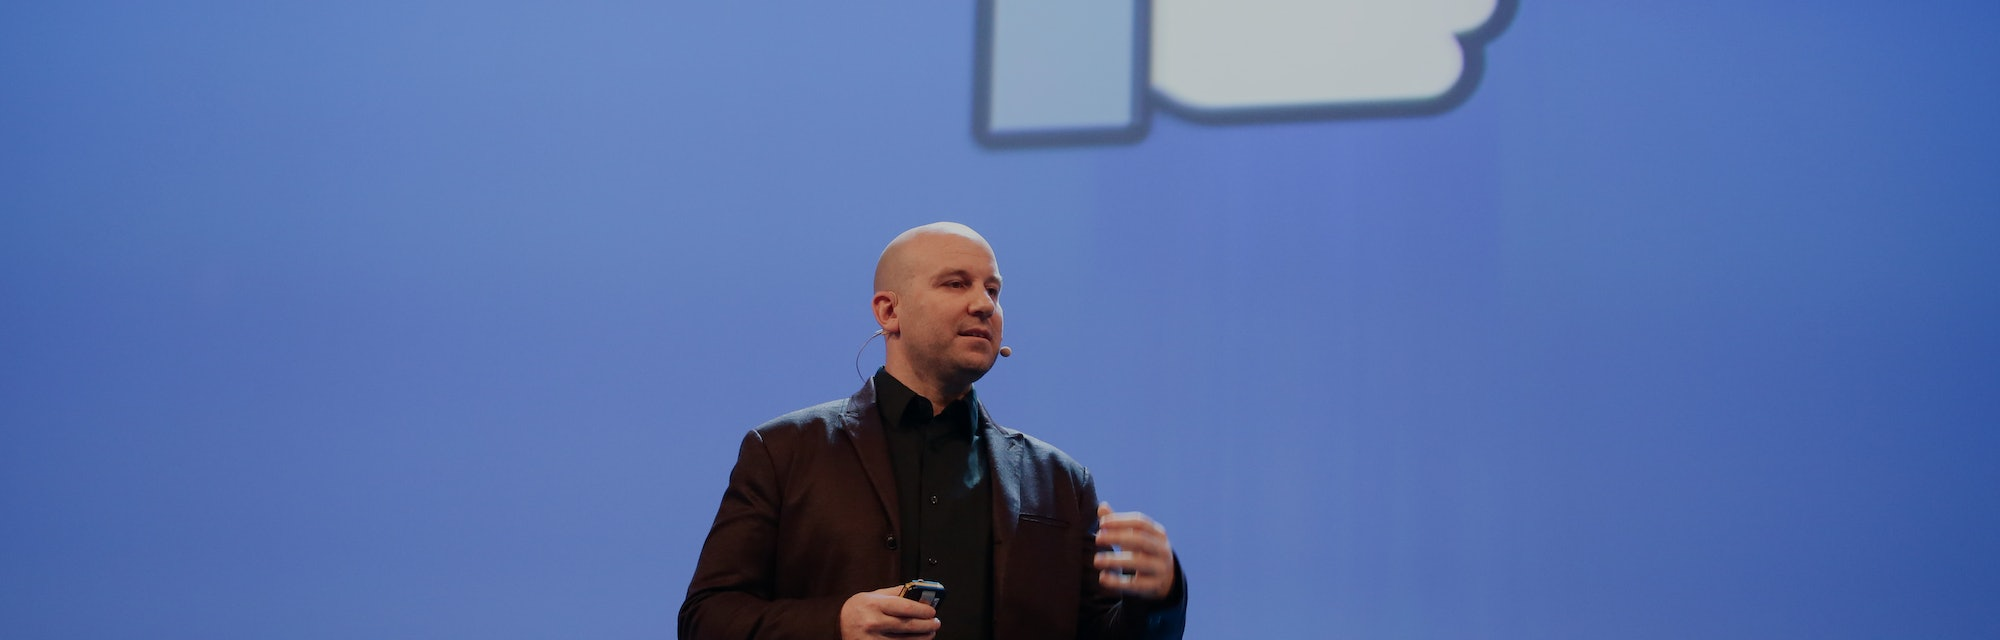 Facebook executive Andrew Bosworth speaking on stage.